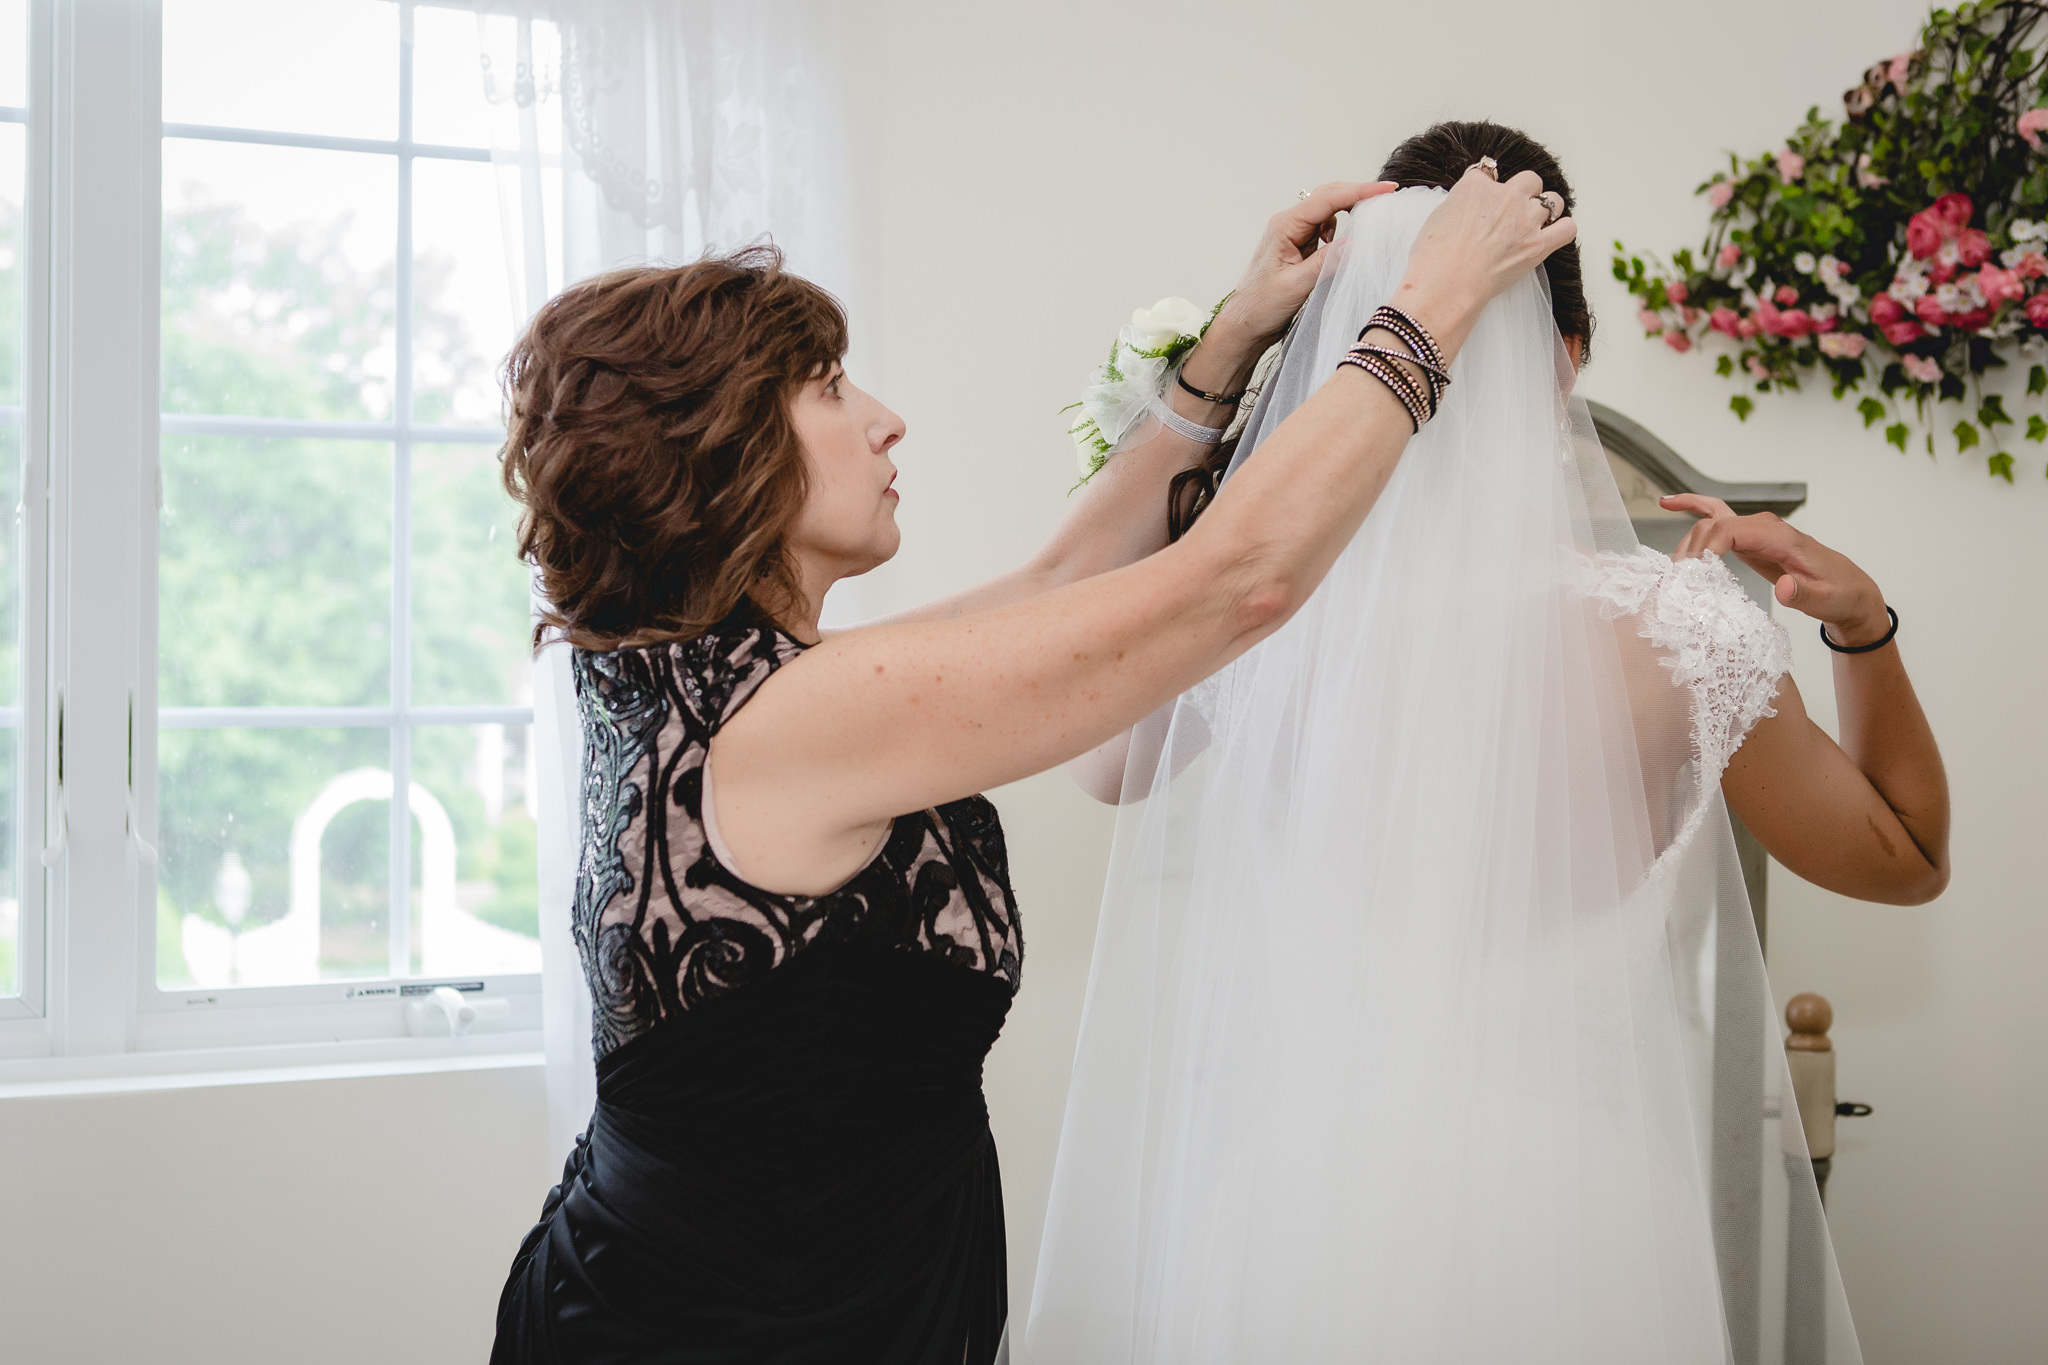 Mother of the bride puts the veil into the bride's hair